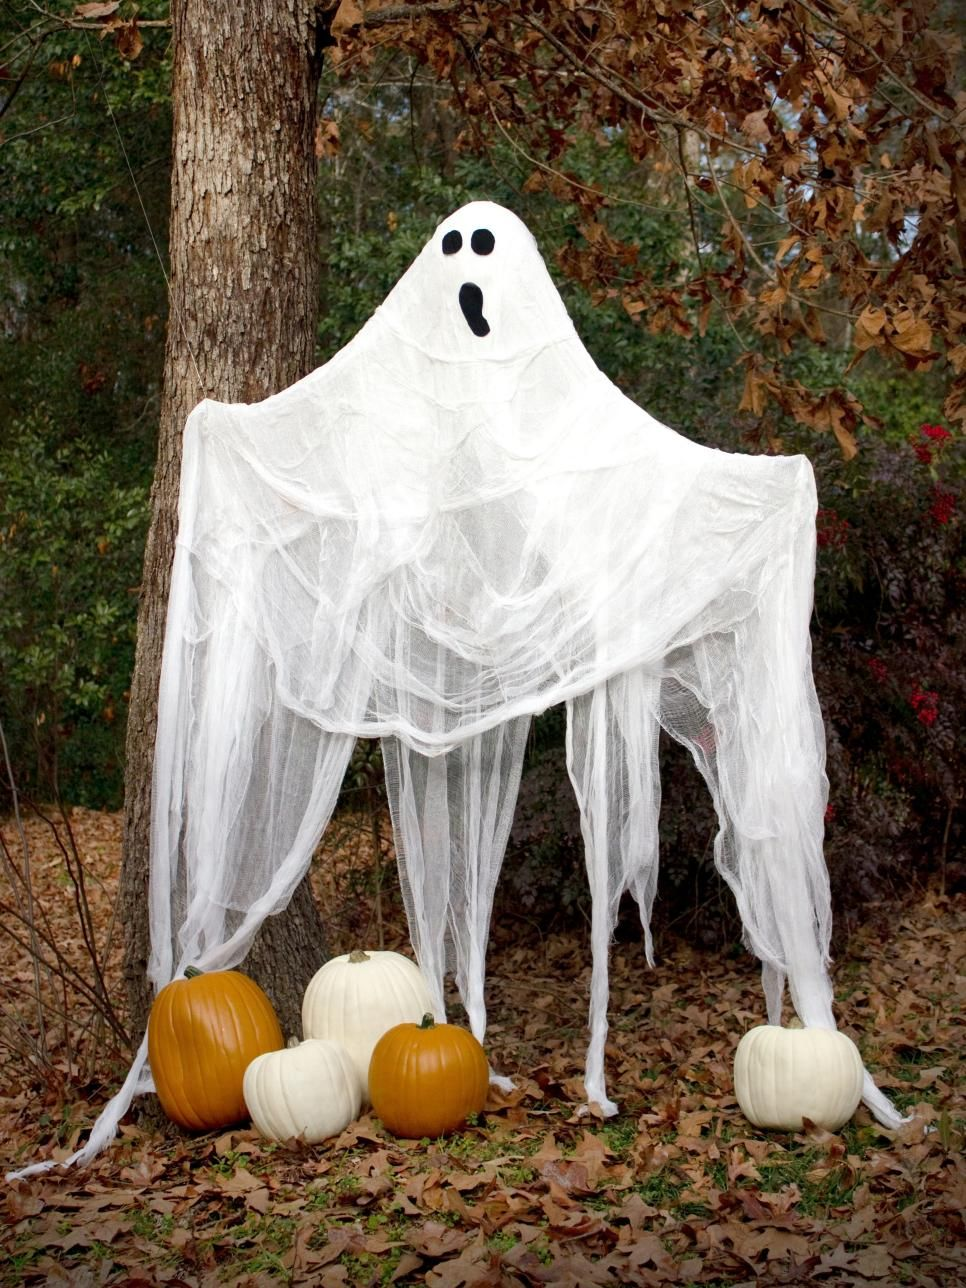 65 diy halloween decorations decorating ideas our 65 favorite halloween decorating ideas solutioingenieria Gallery